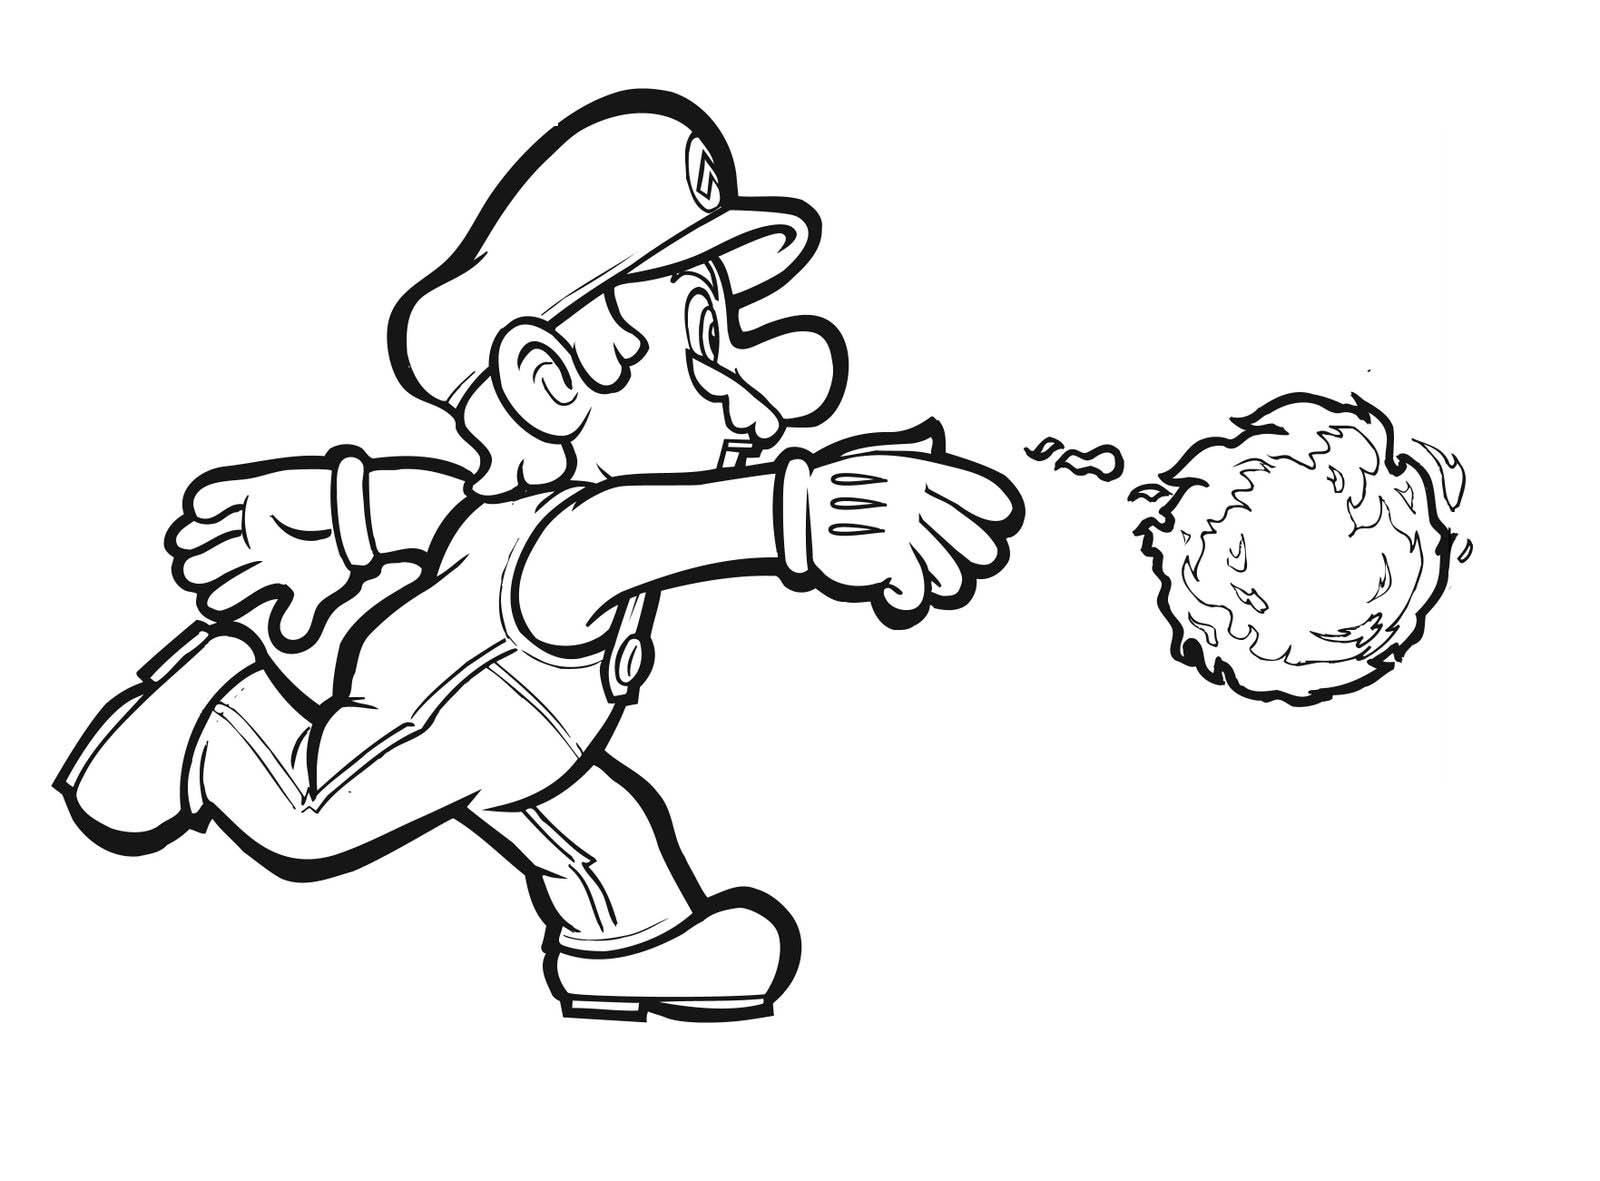 mario coloring pages printable - 9 free mario bros coloring pages for kids disney